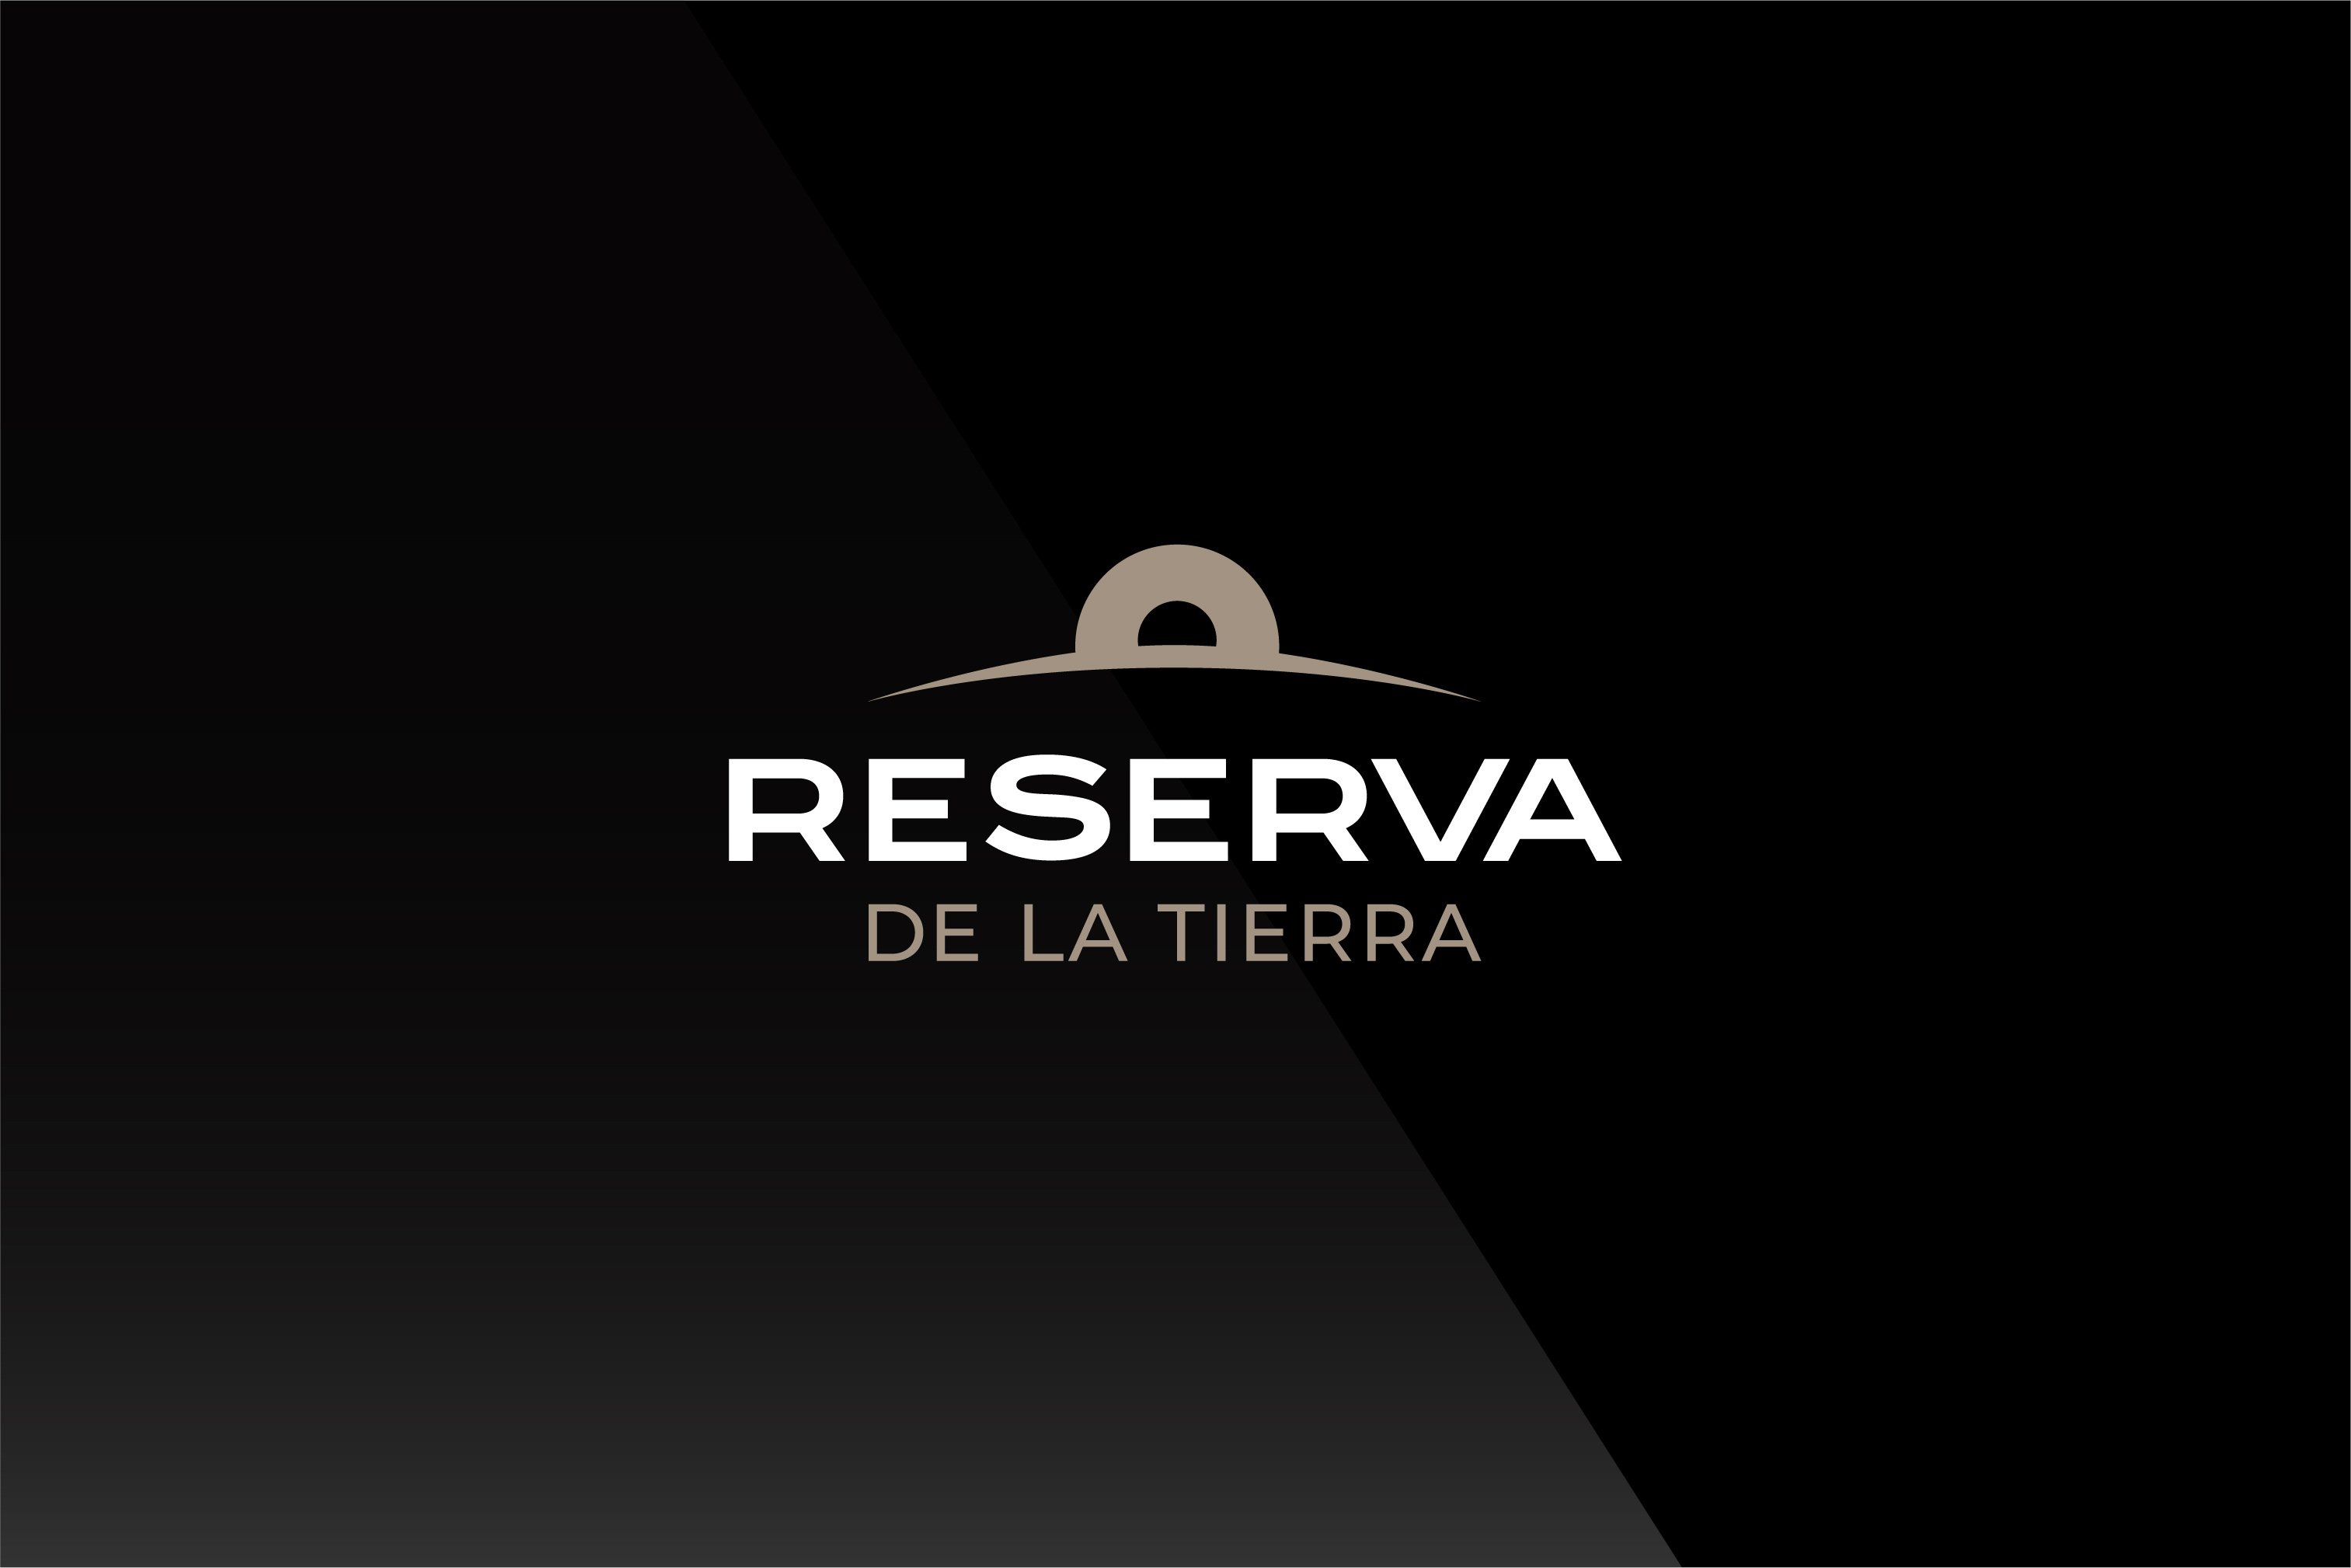 Renewed Corporate Image | Reserva de la Tierra